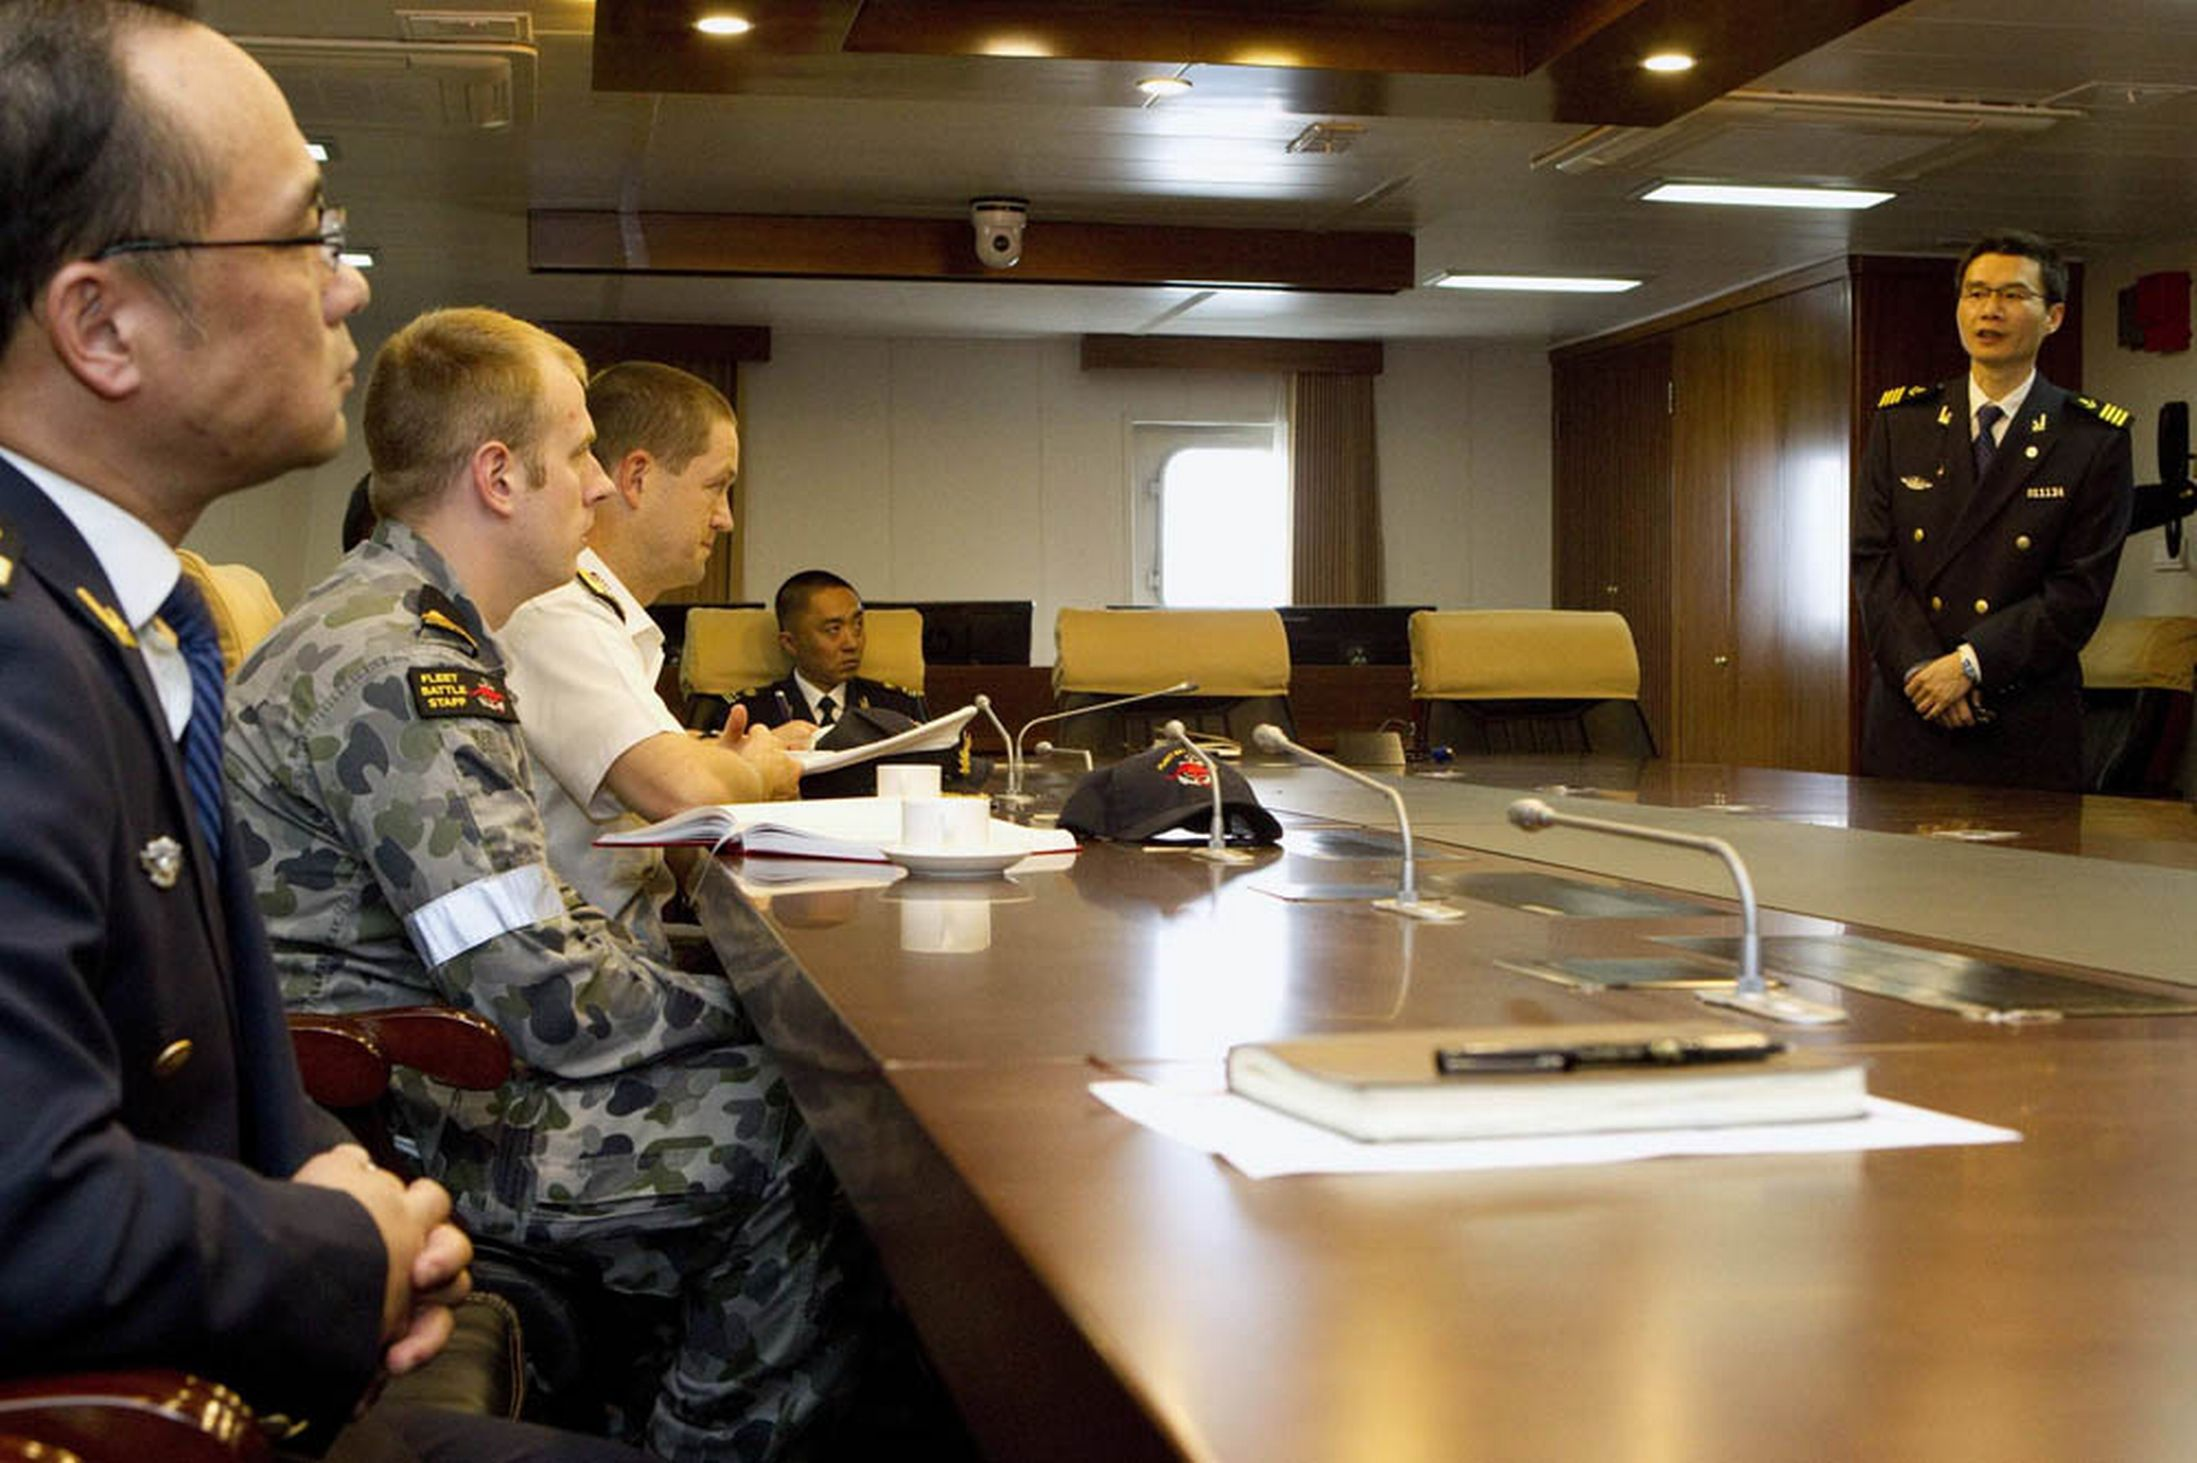 Commanding Officer of the Chinese Coast Guard vessel Haixun 01, Captain Jiang Long, gives a briefing to Senior Colonel Ma Liedong, Australian Navy Staff Officer Sub-Lieutenant Phillip Wagner, and Commander of Joint Task Force 658, Commodore Peter Leavy, (L-R) about the continuing search for the missing Malaysian Airlines flight MH370